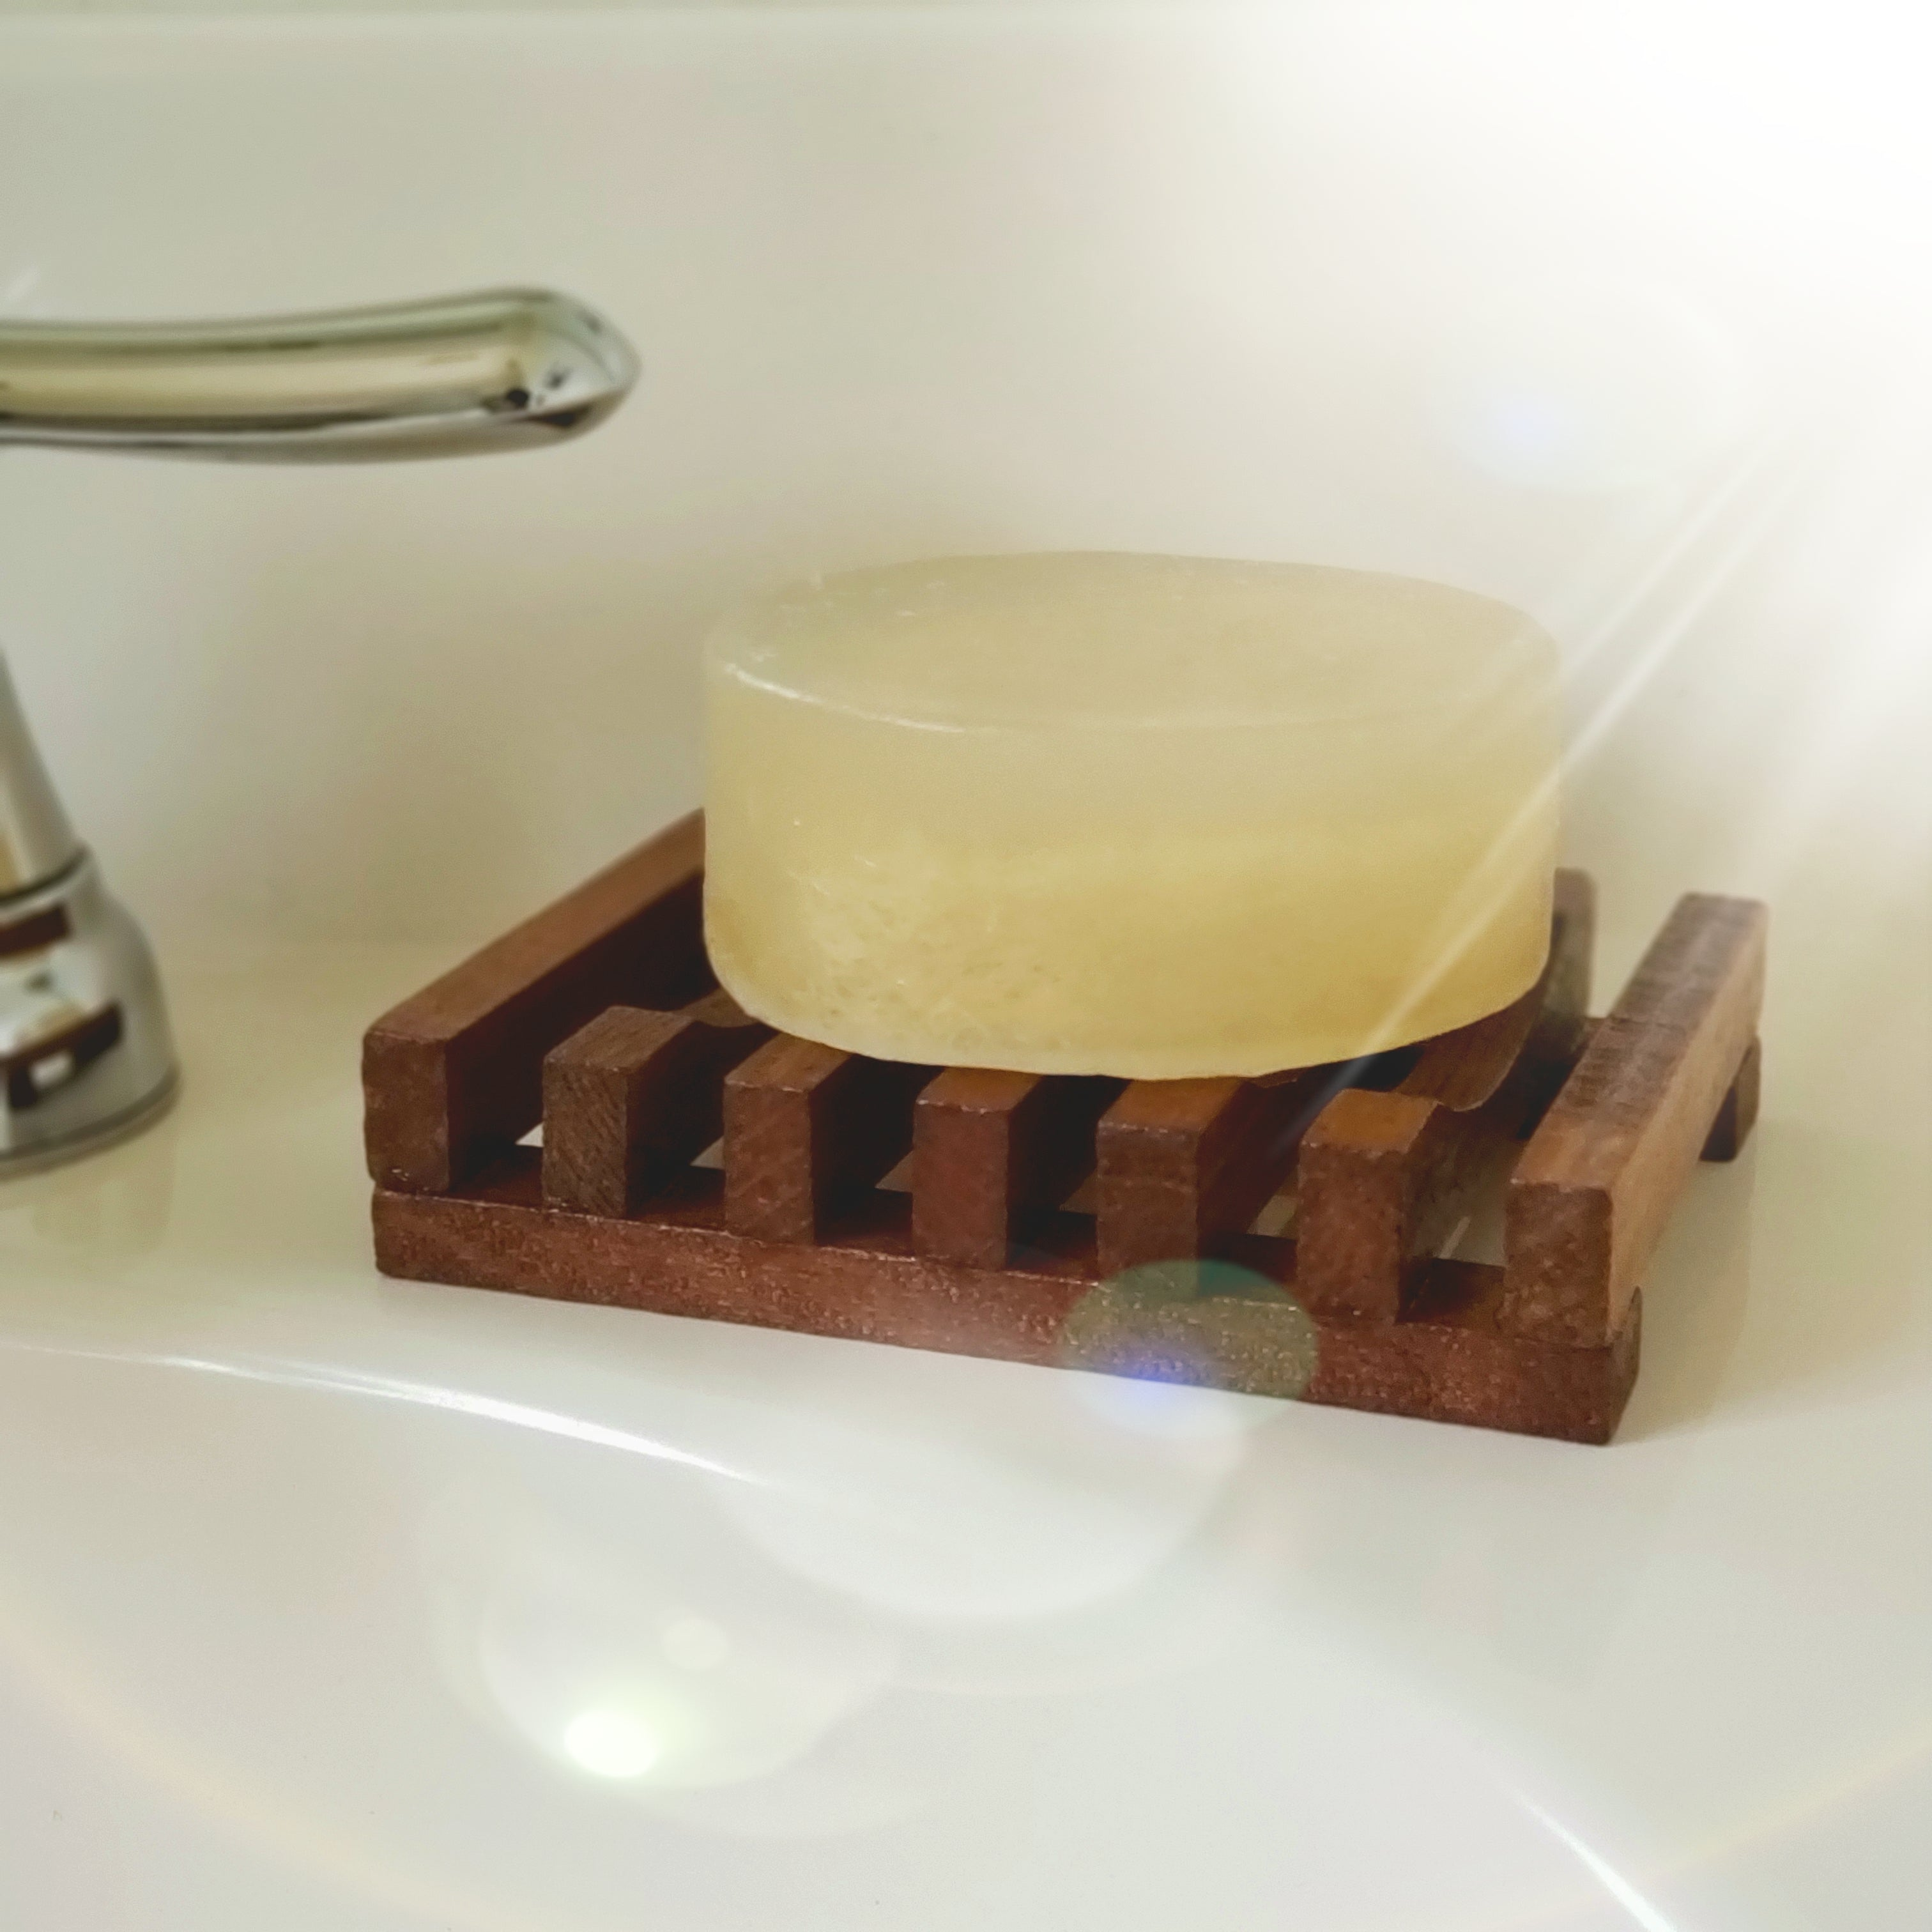 Wooden Soap Holder with soap